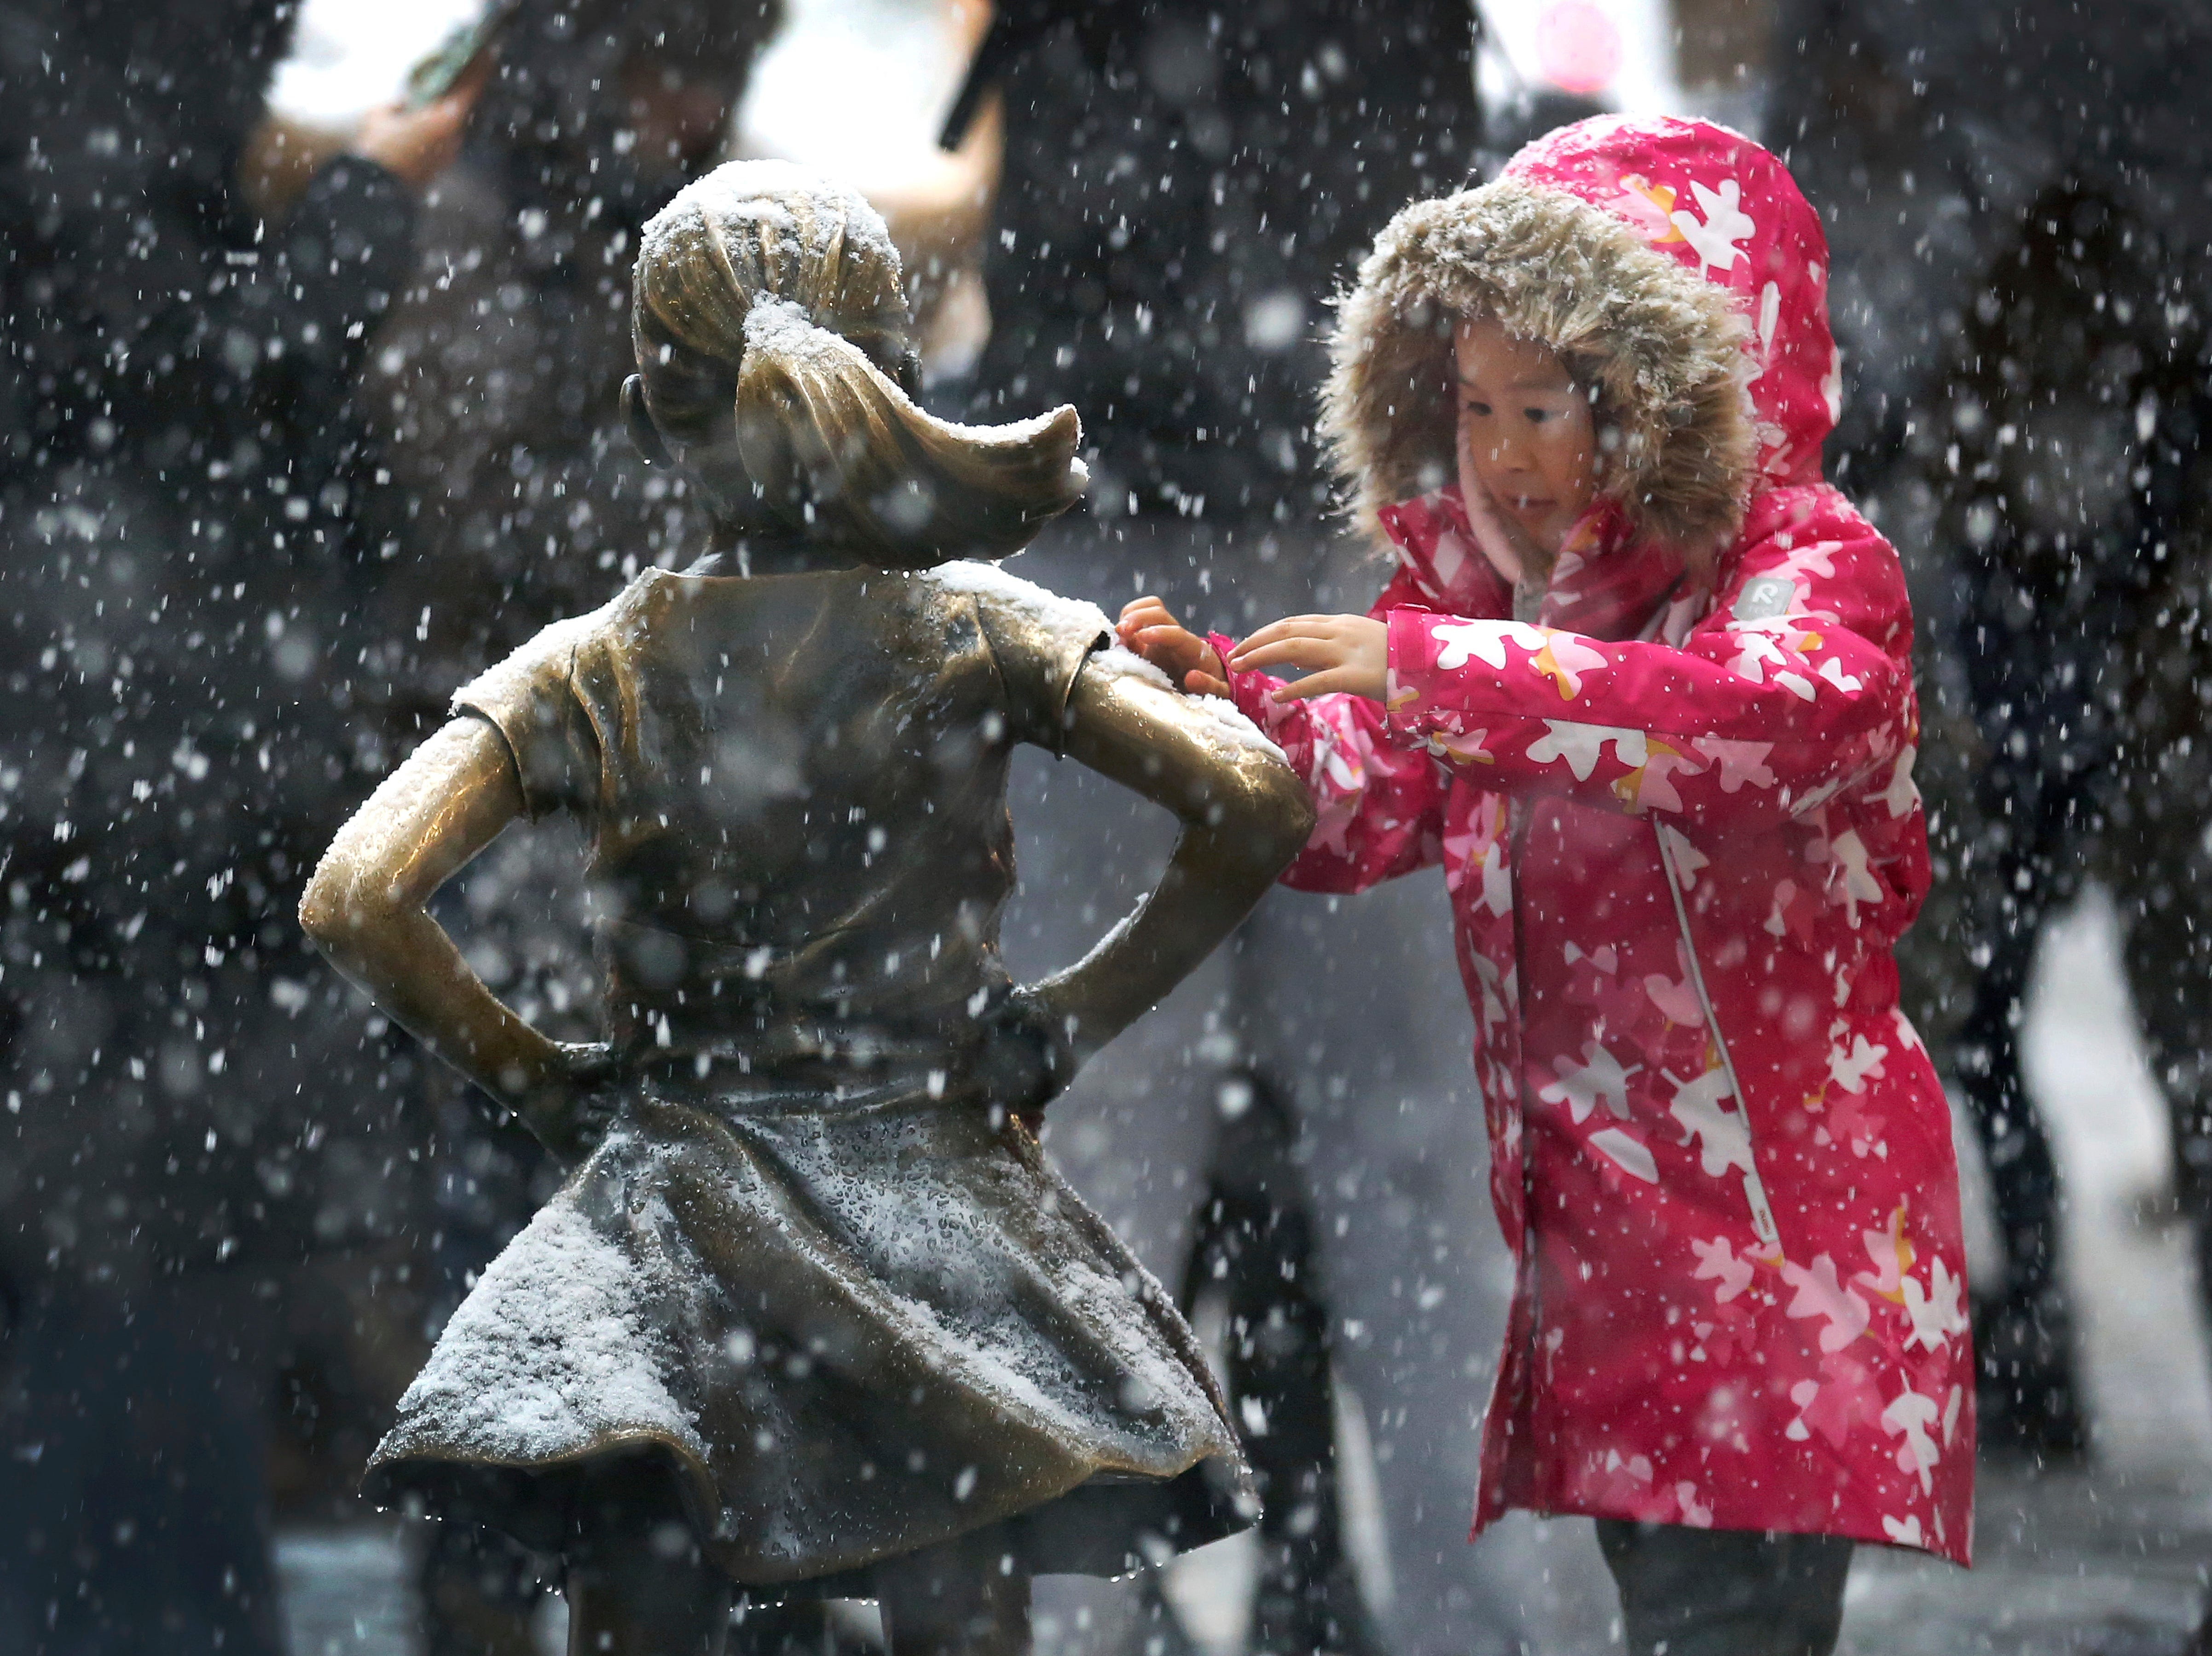 A young girl brushes off snow on the Fearless Girl statue in lower Manhattan on Thursday, Nov. 15, 2018, in New York. One of the first big storms of the season moved across the eastern half of the country on Thursday.